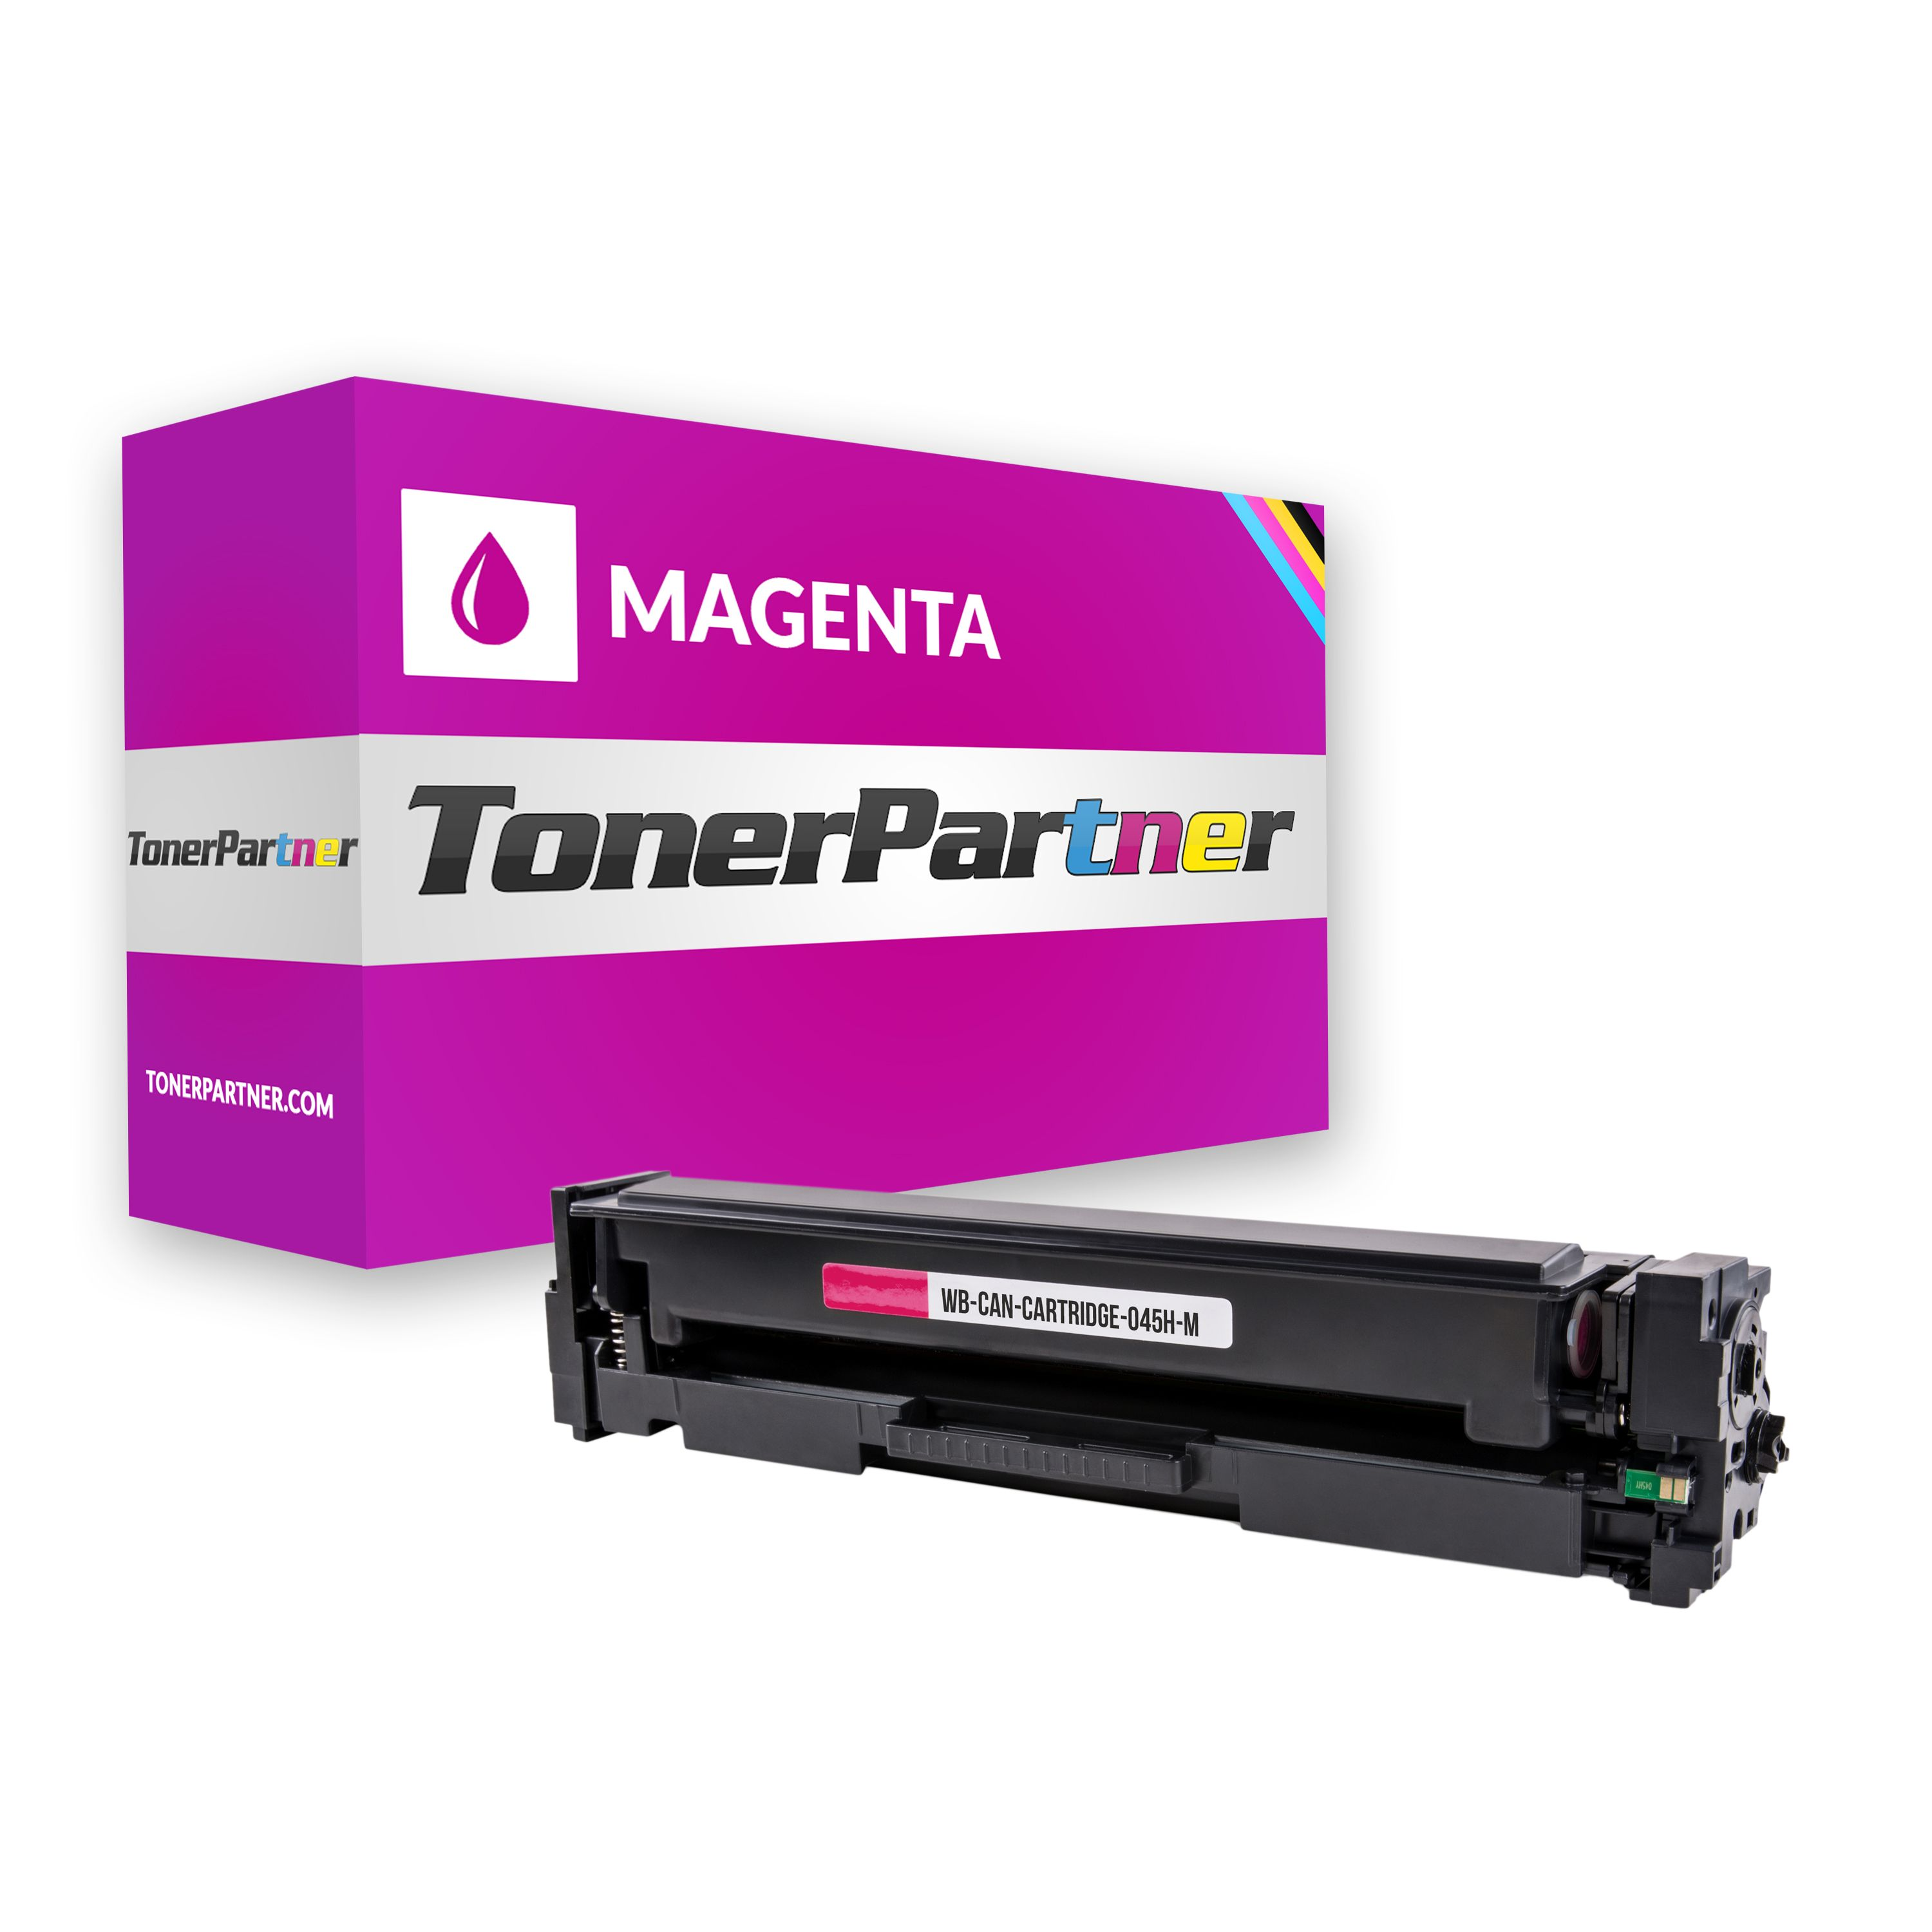 Compatible to Canon 1244 C 002 / 045H Toner magenta